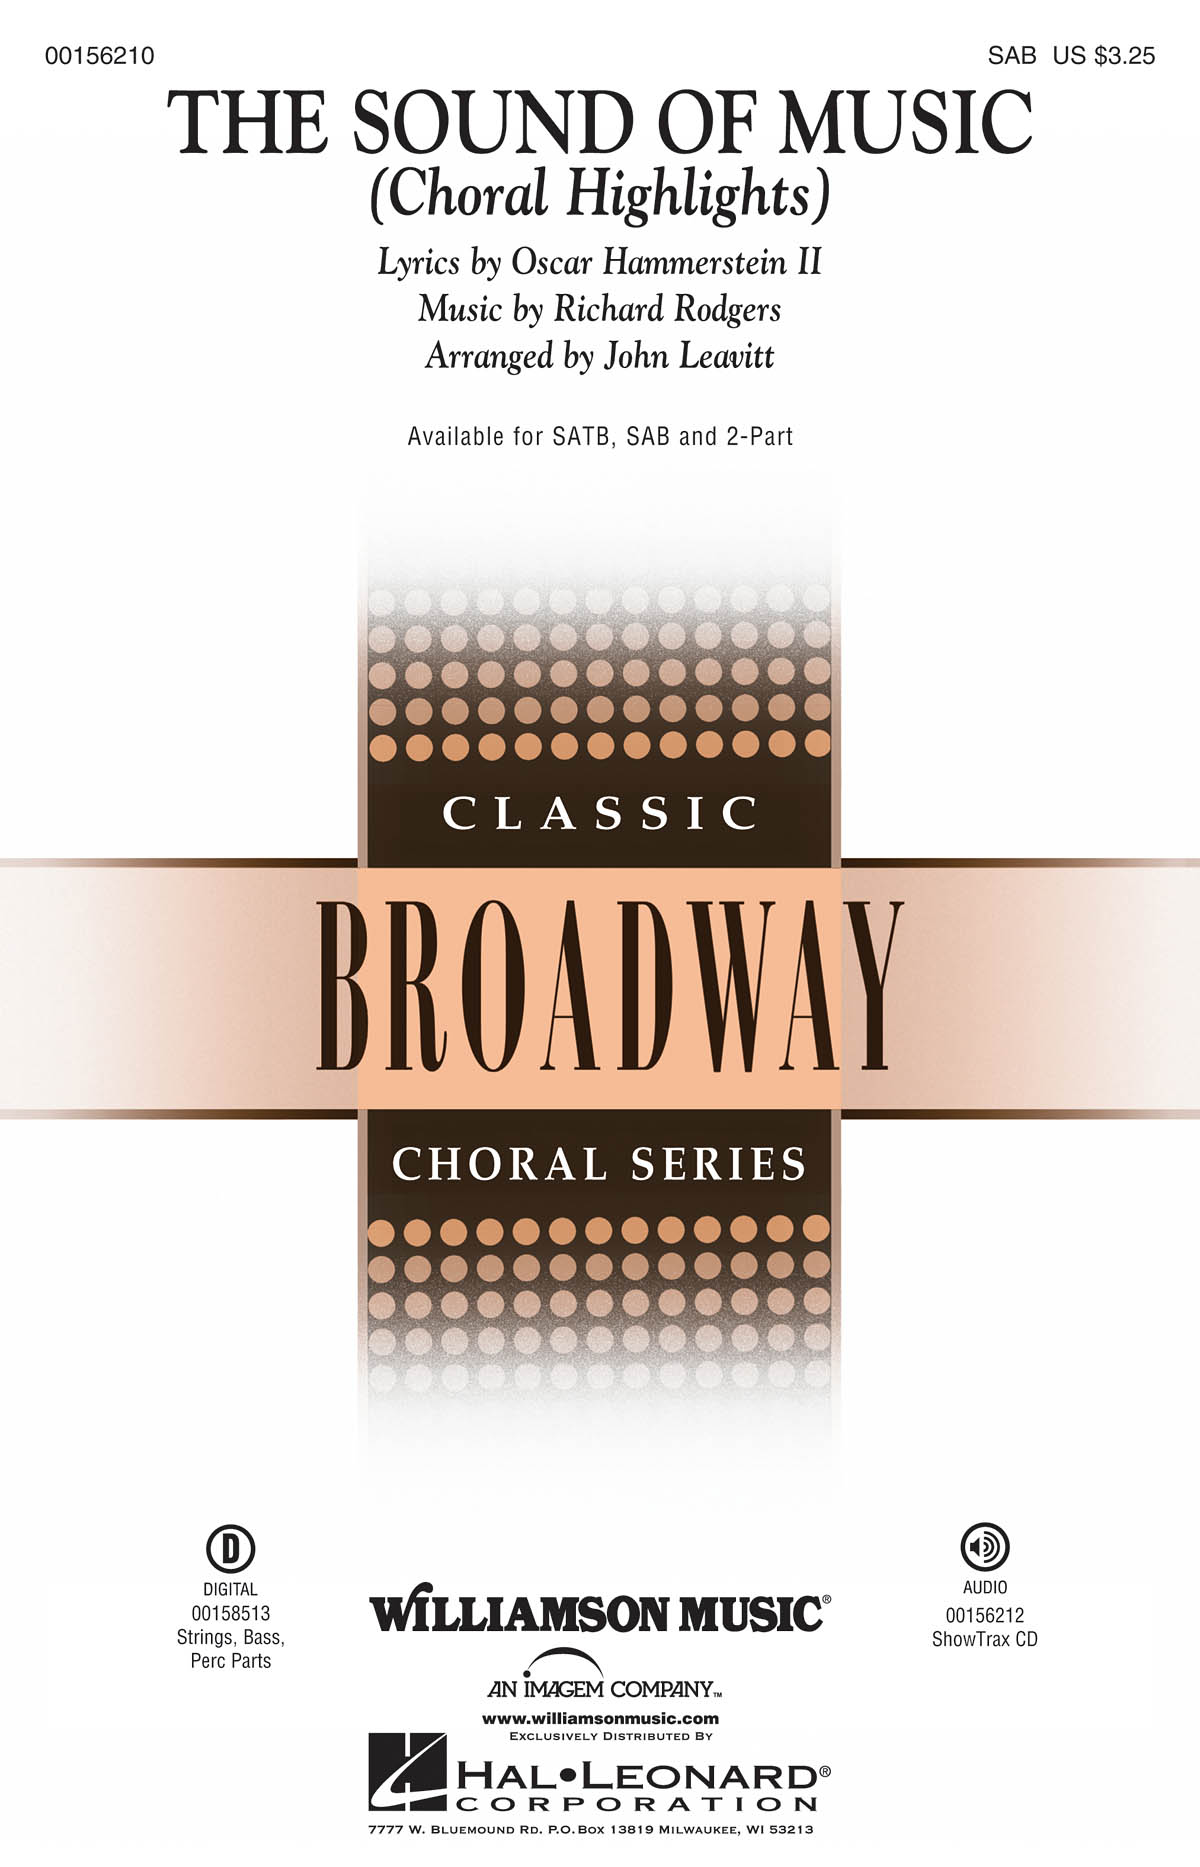 Julie Andrews: The Sound Of Music - Choral Highlights (SAB). Sheet Music for SAB Piano Accompaniment